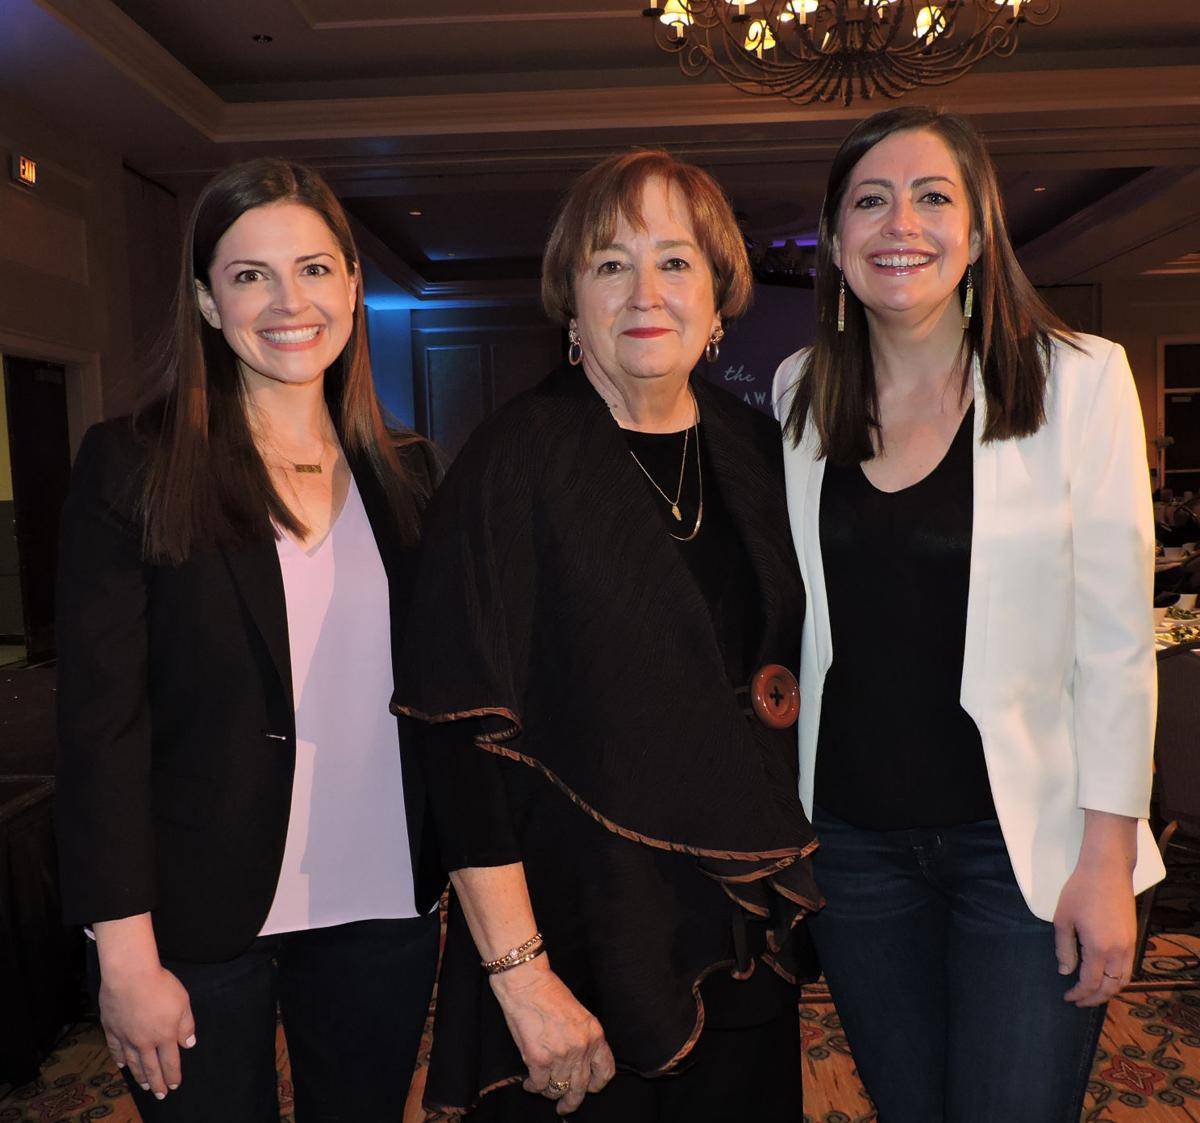 Athena Award luncheon: 2003 honoree Pam Shockley-Zalabak, center, with luncheon speakers Emily Nuñez Cavness, left, and Betsy Nuñez, who founded Sword & Plough, a veteran-owned company that repurposes military surplus into fashion bags and accessories. 040518 Photo by Linda Navarro